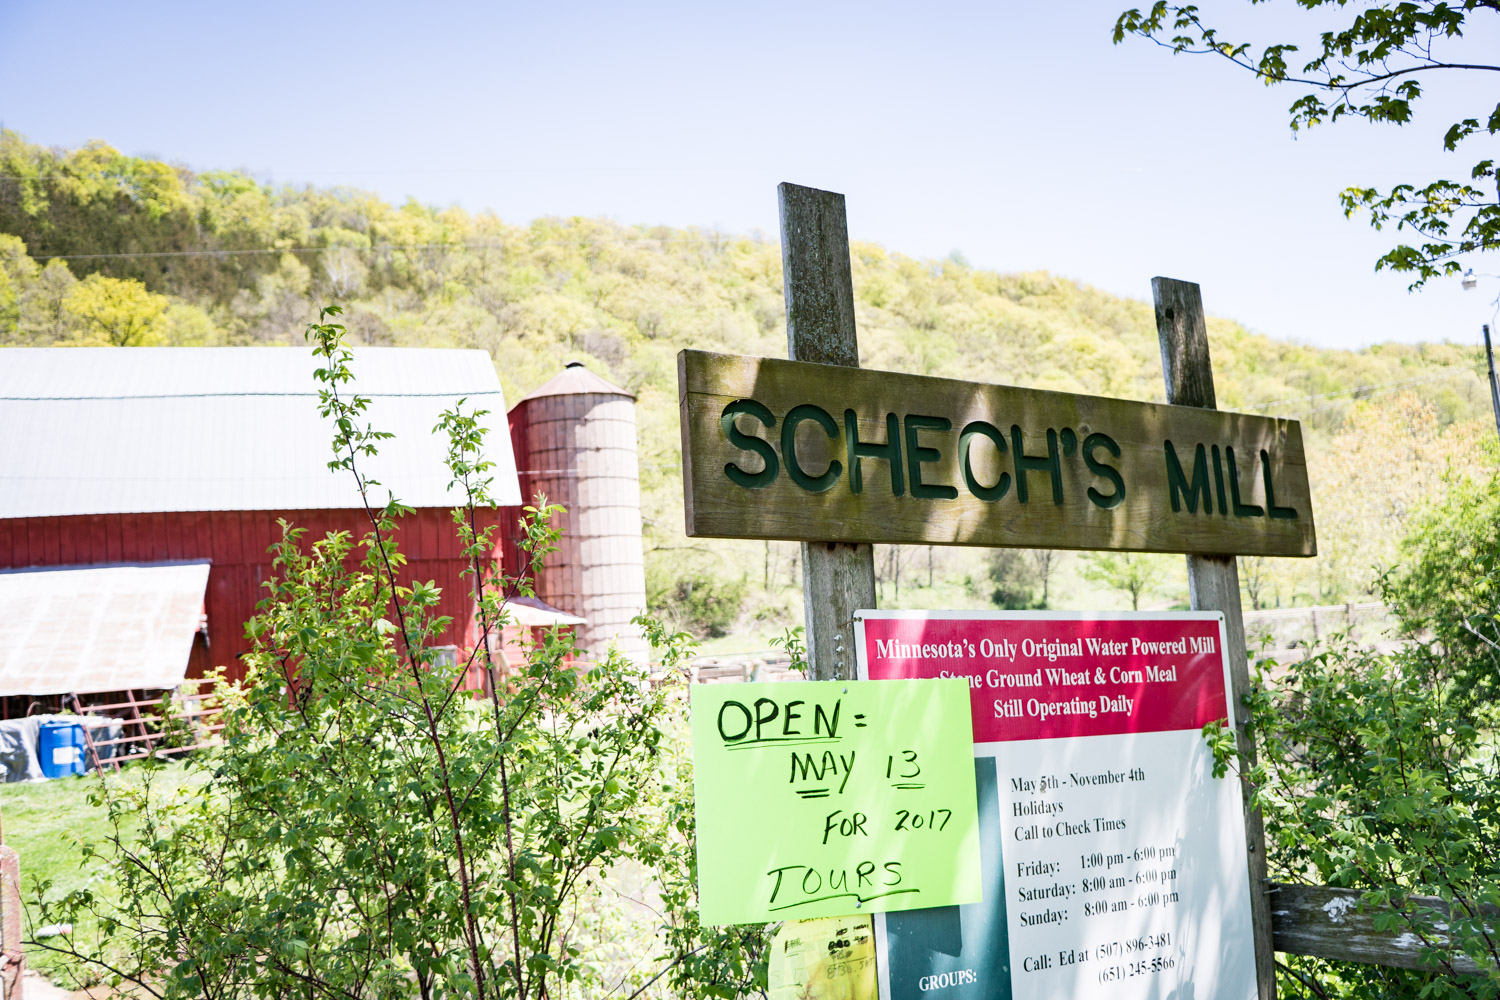 Schech's Mill in Caledonia, Minnesota, is a four-generation water-powered operation // Photo by Kevin Kramer, The Growler